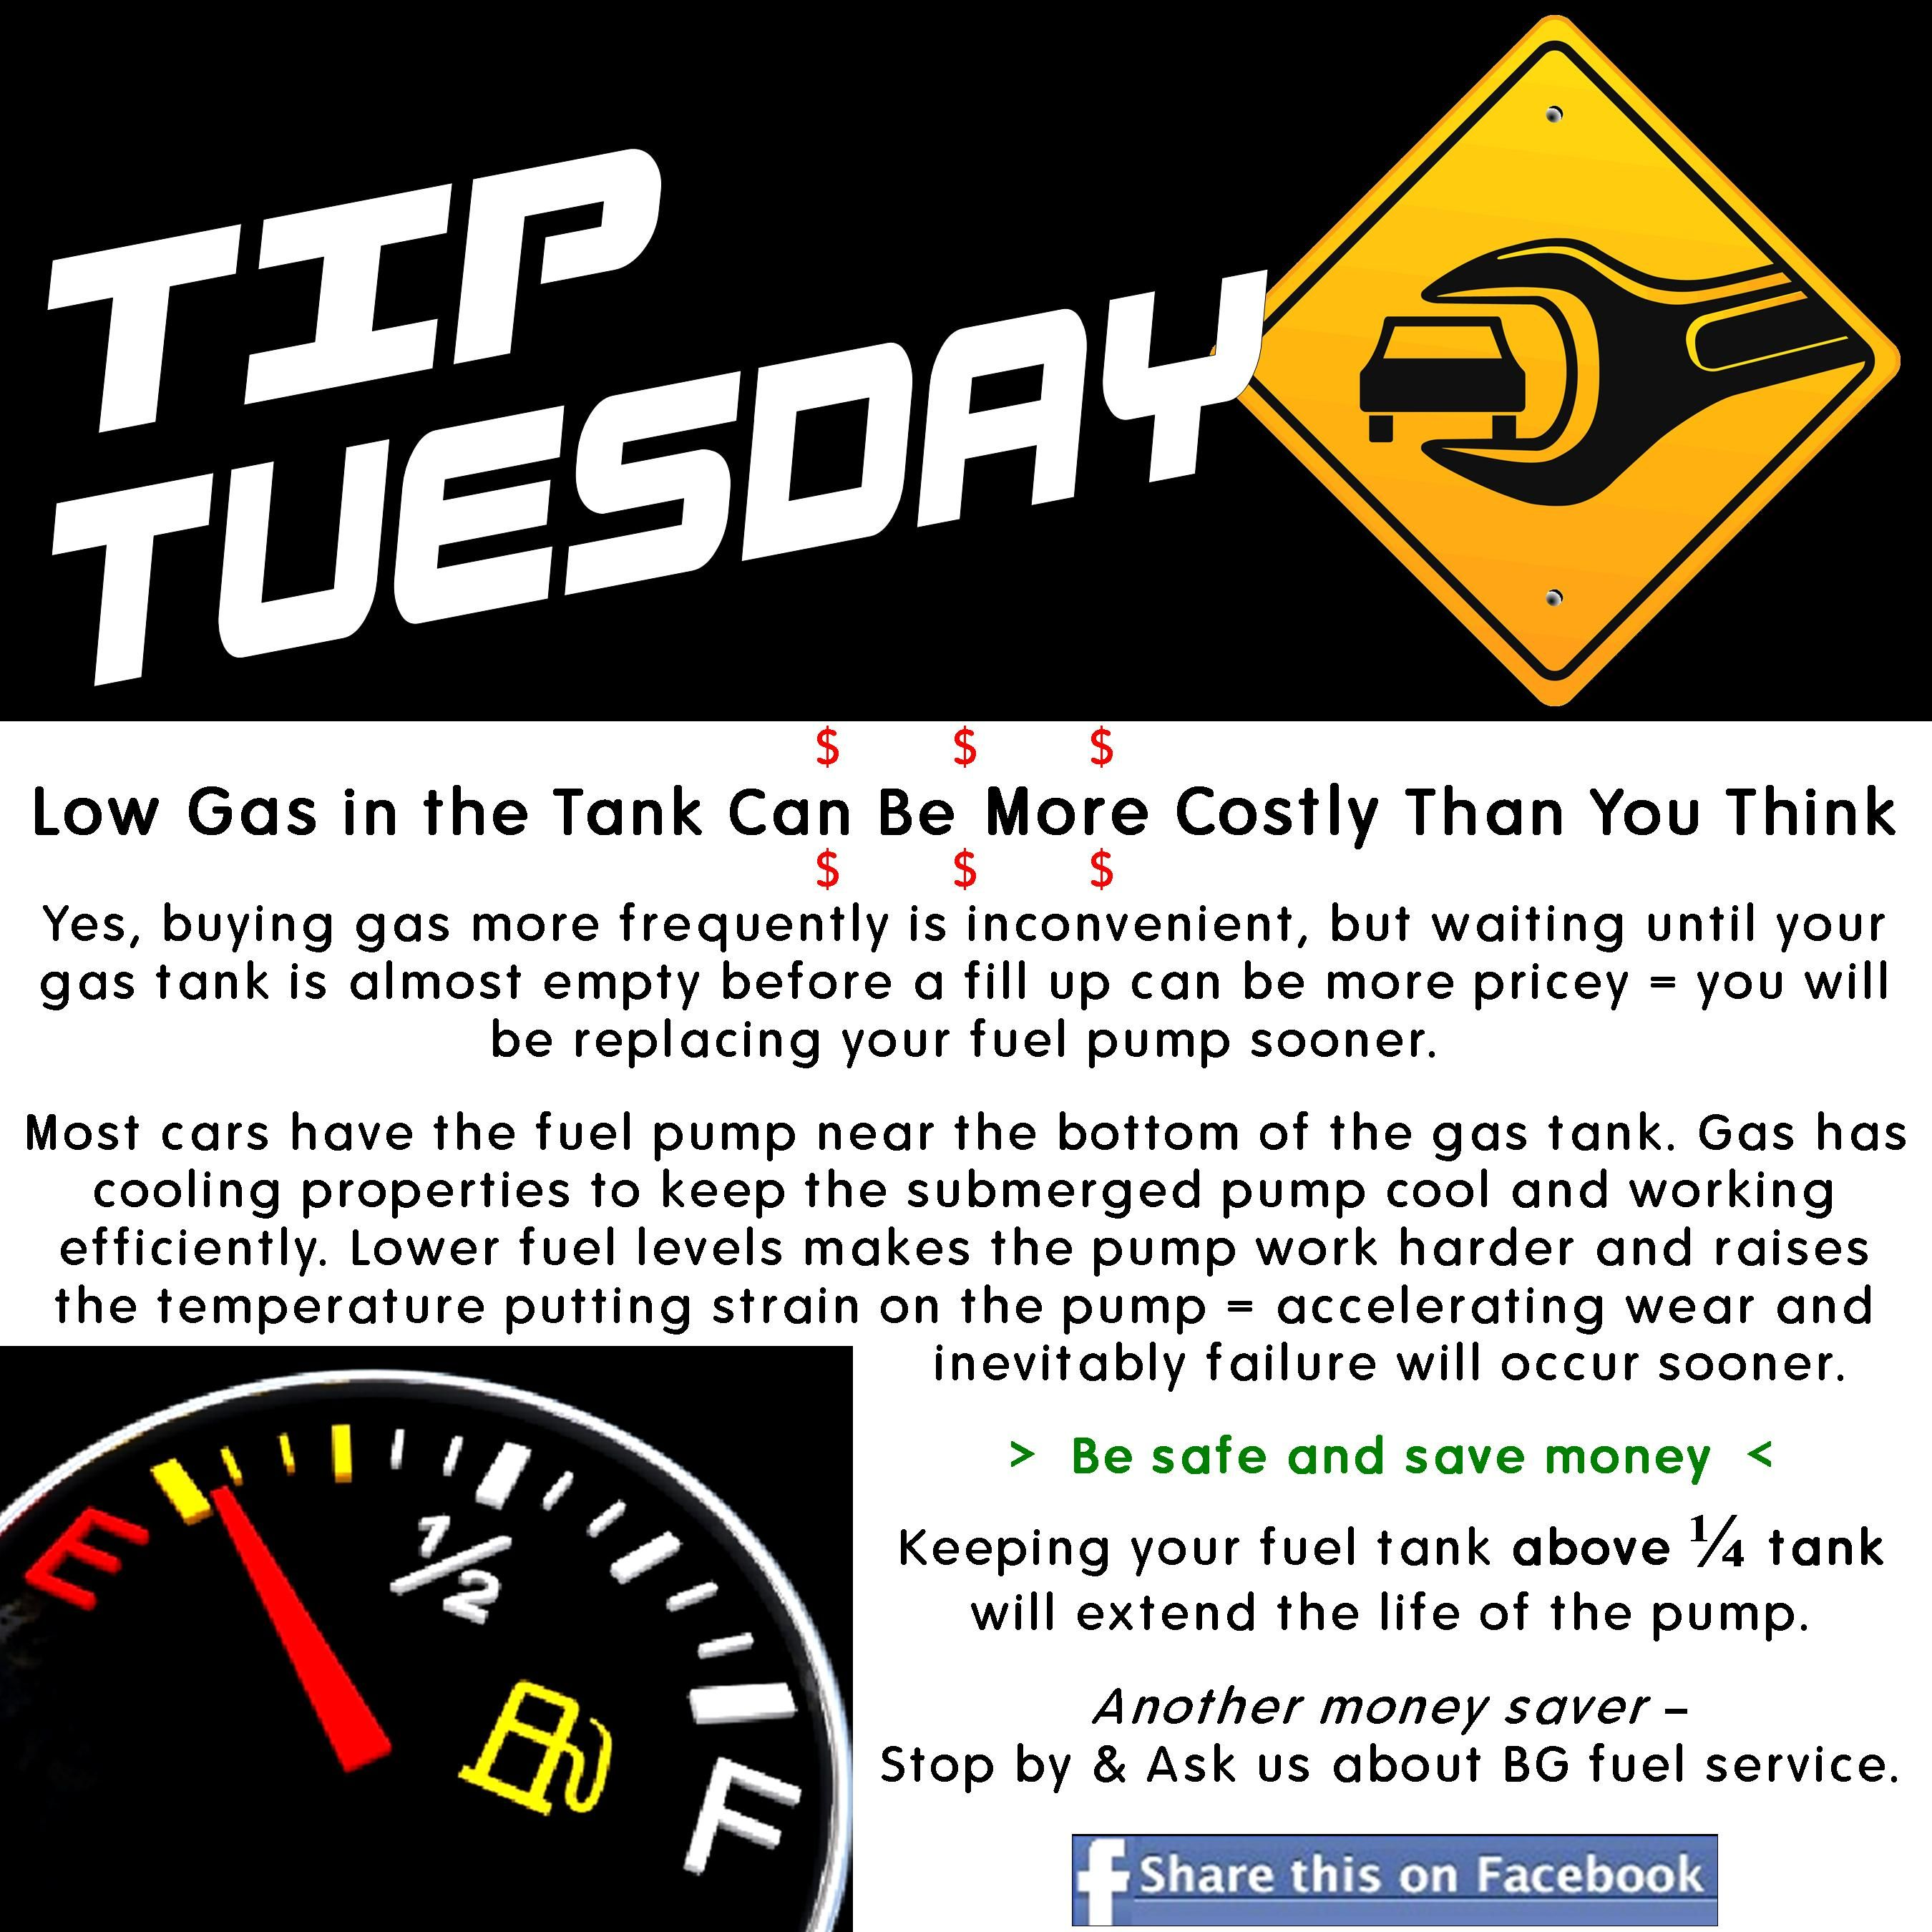 Car Care Tip: Don't Let The Gas In Your Fuel Tank Run Low